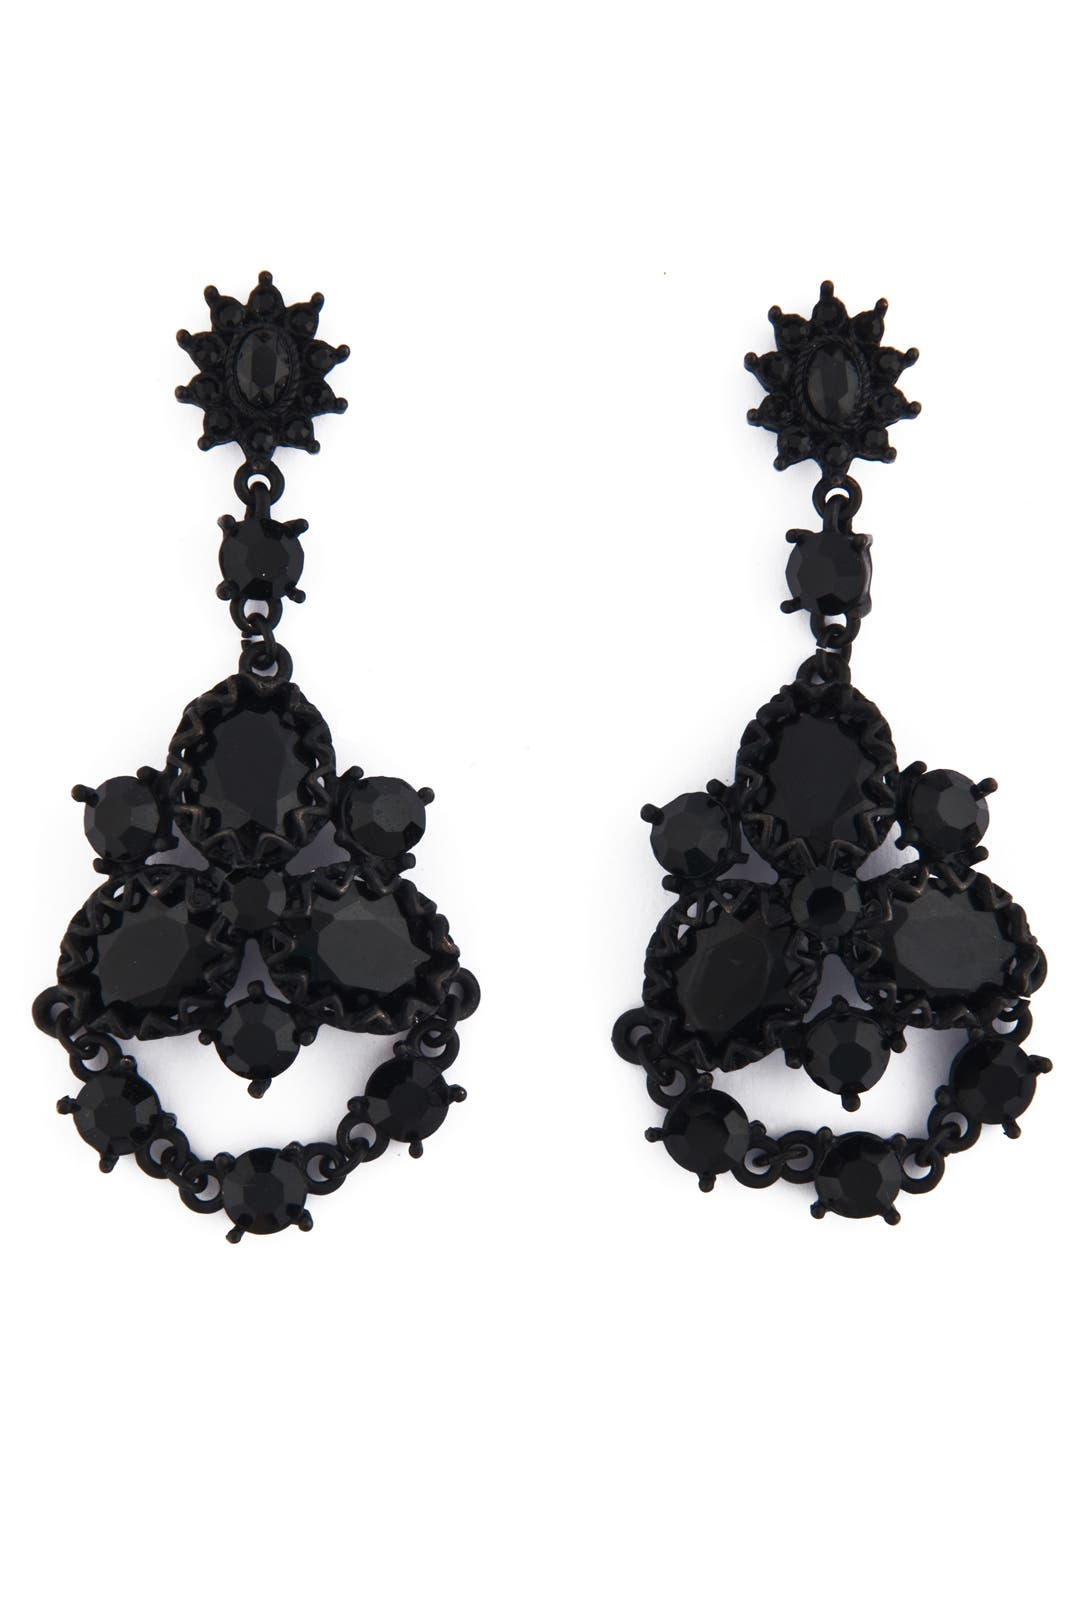 Elegant Sophisticated Symmetry Earrings by Badgley Mischka Jewelry